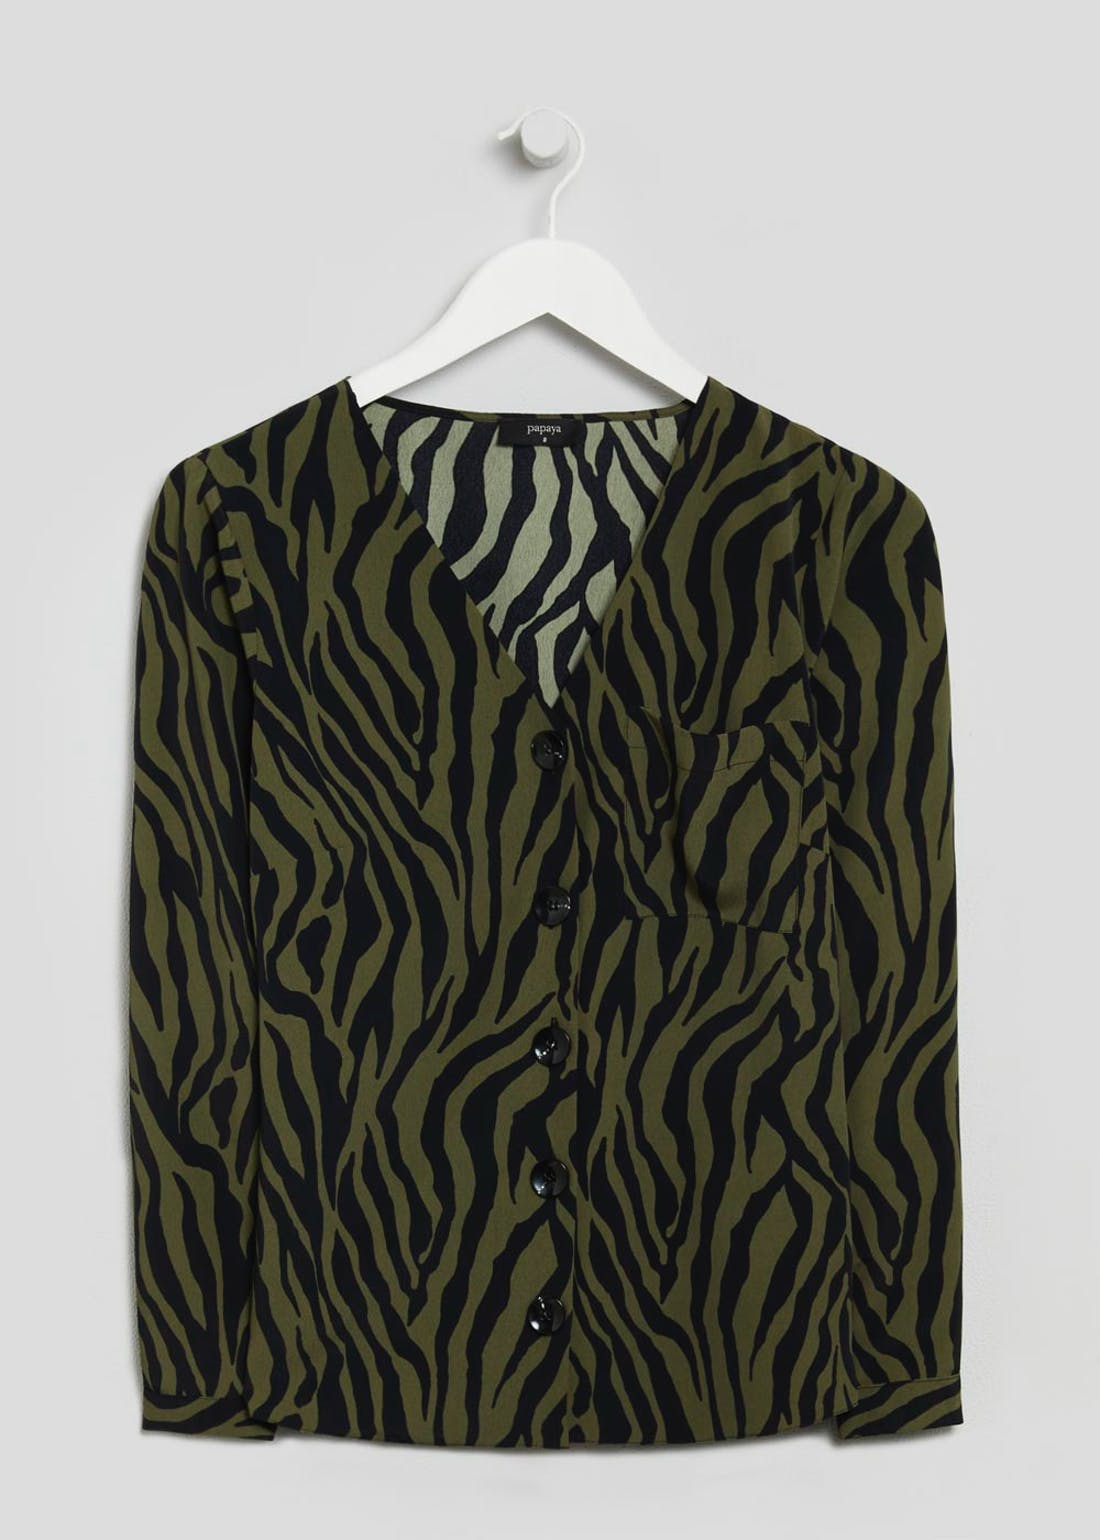 Zebra Print Button Front Shirt